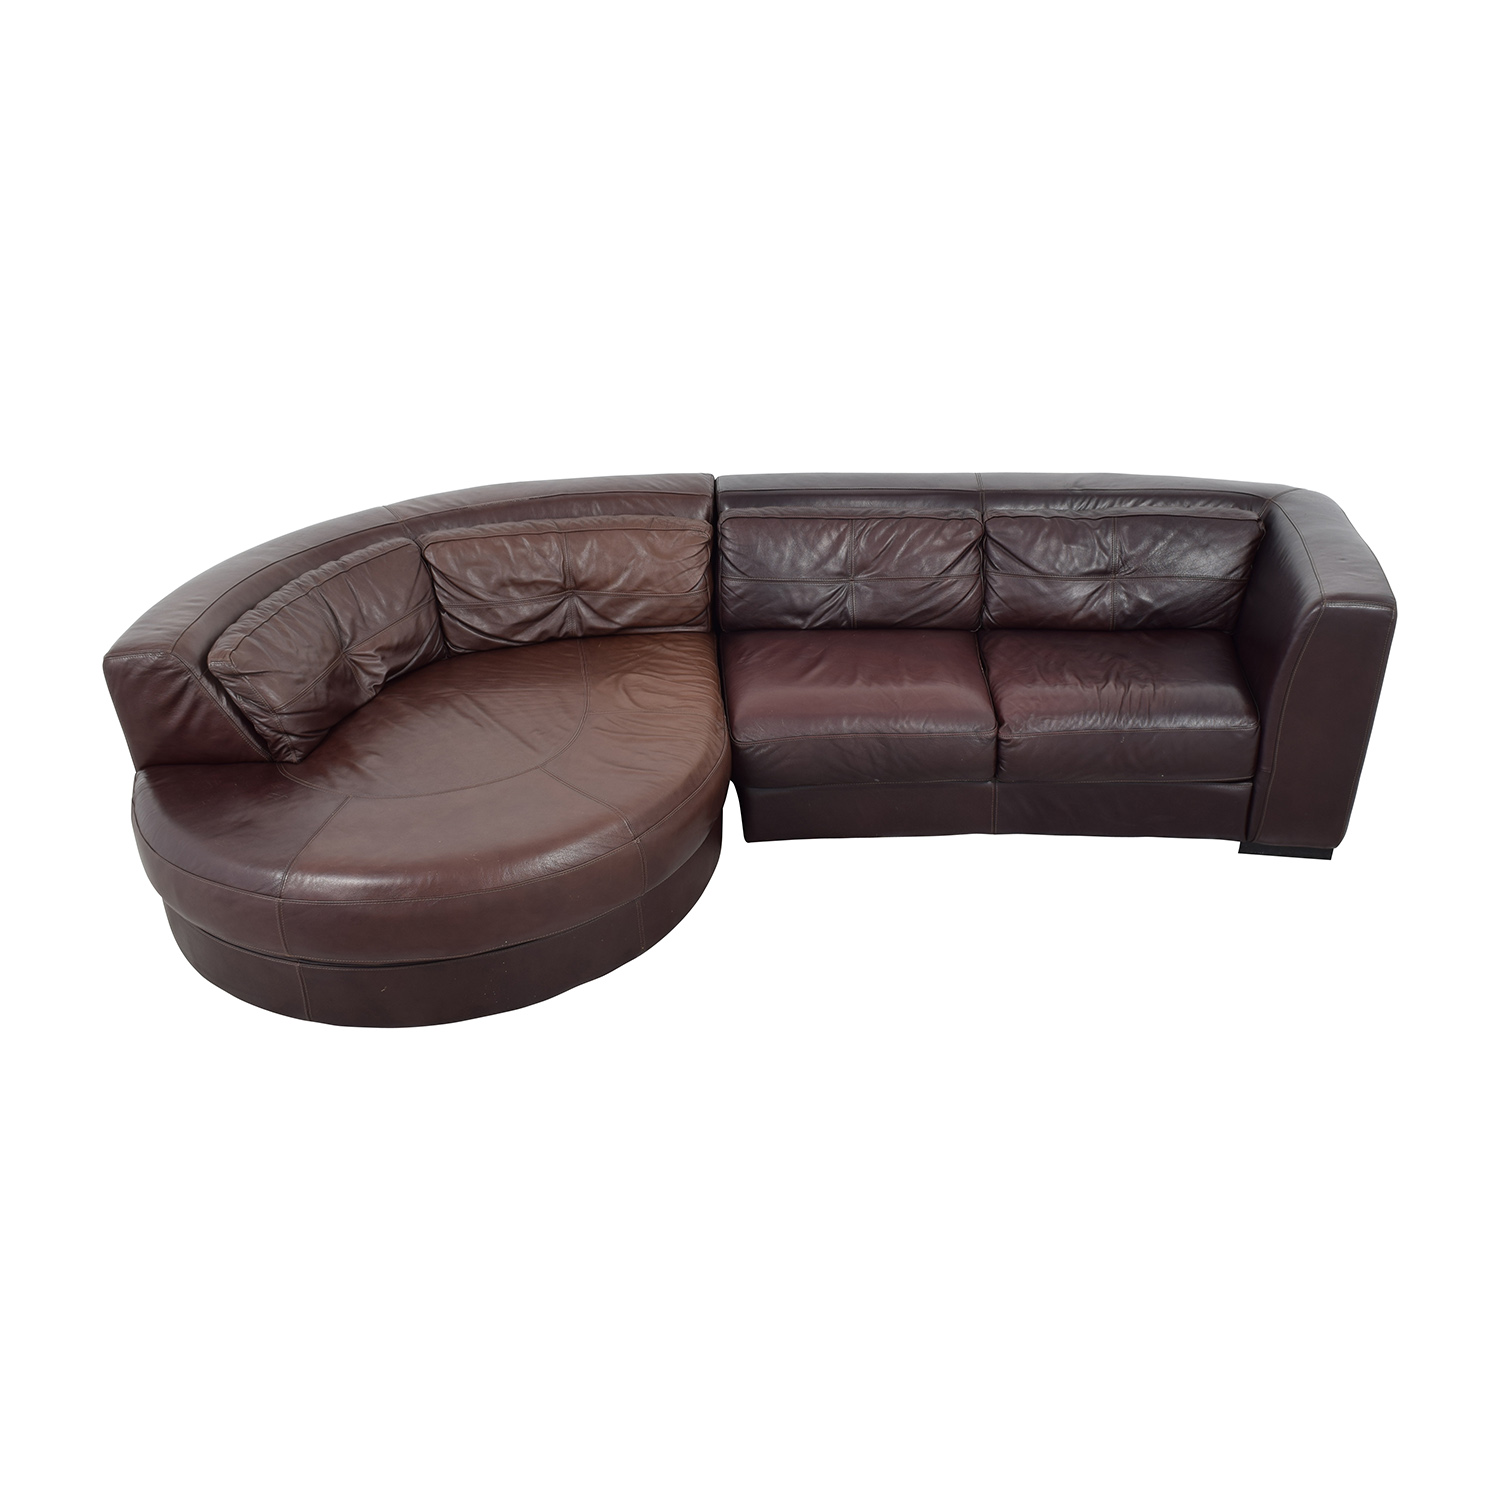 Chateau D'Ax Chateau D'Ax Leather Sectional with Curved Chaise second hand